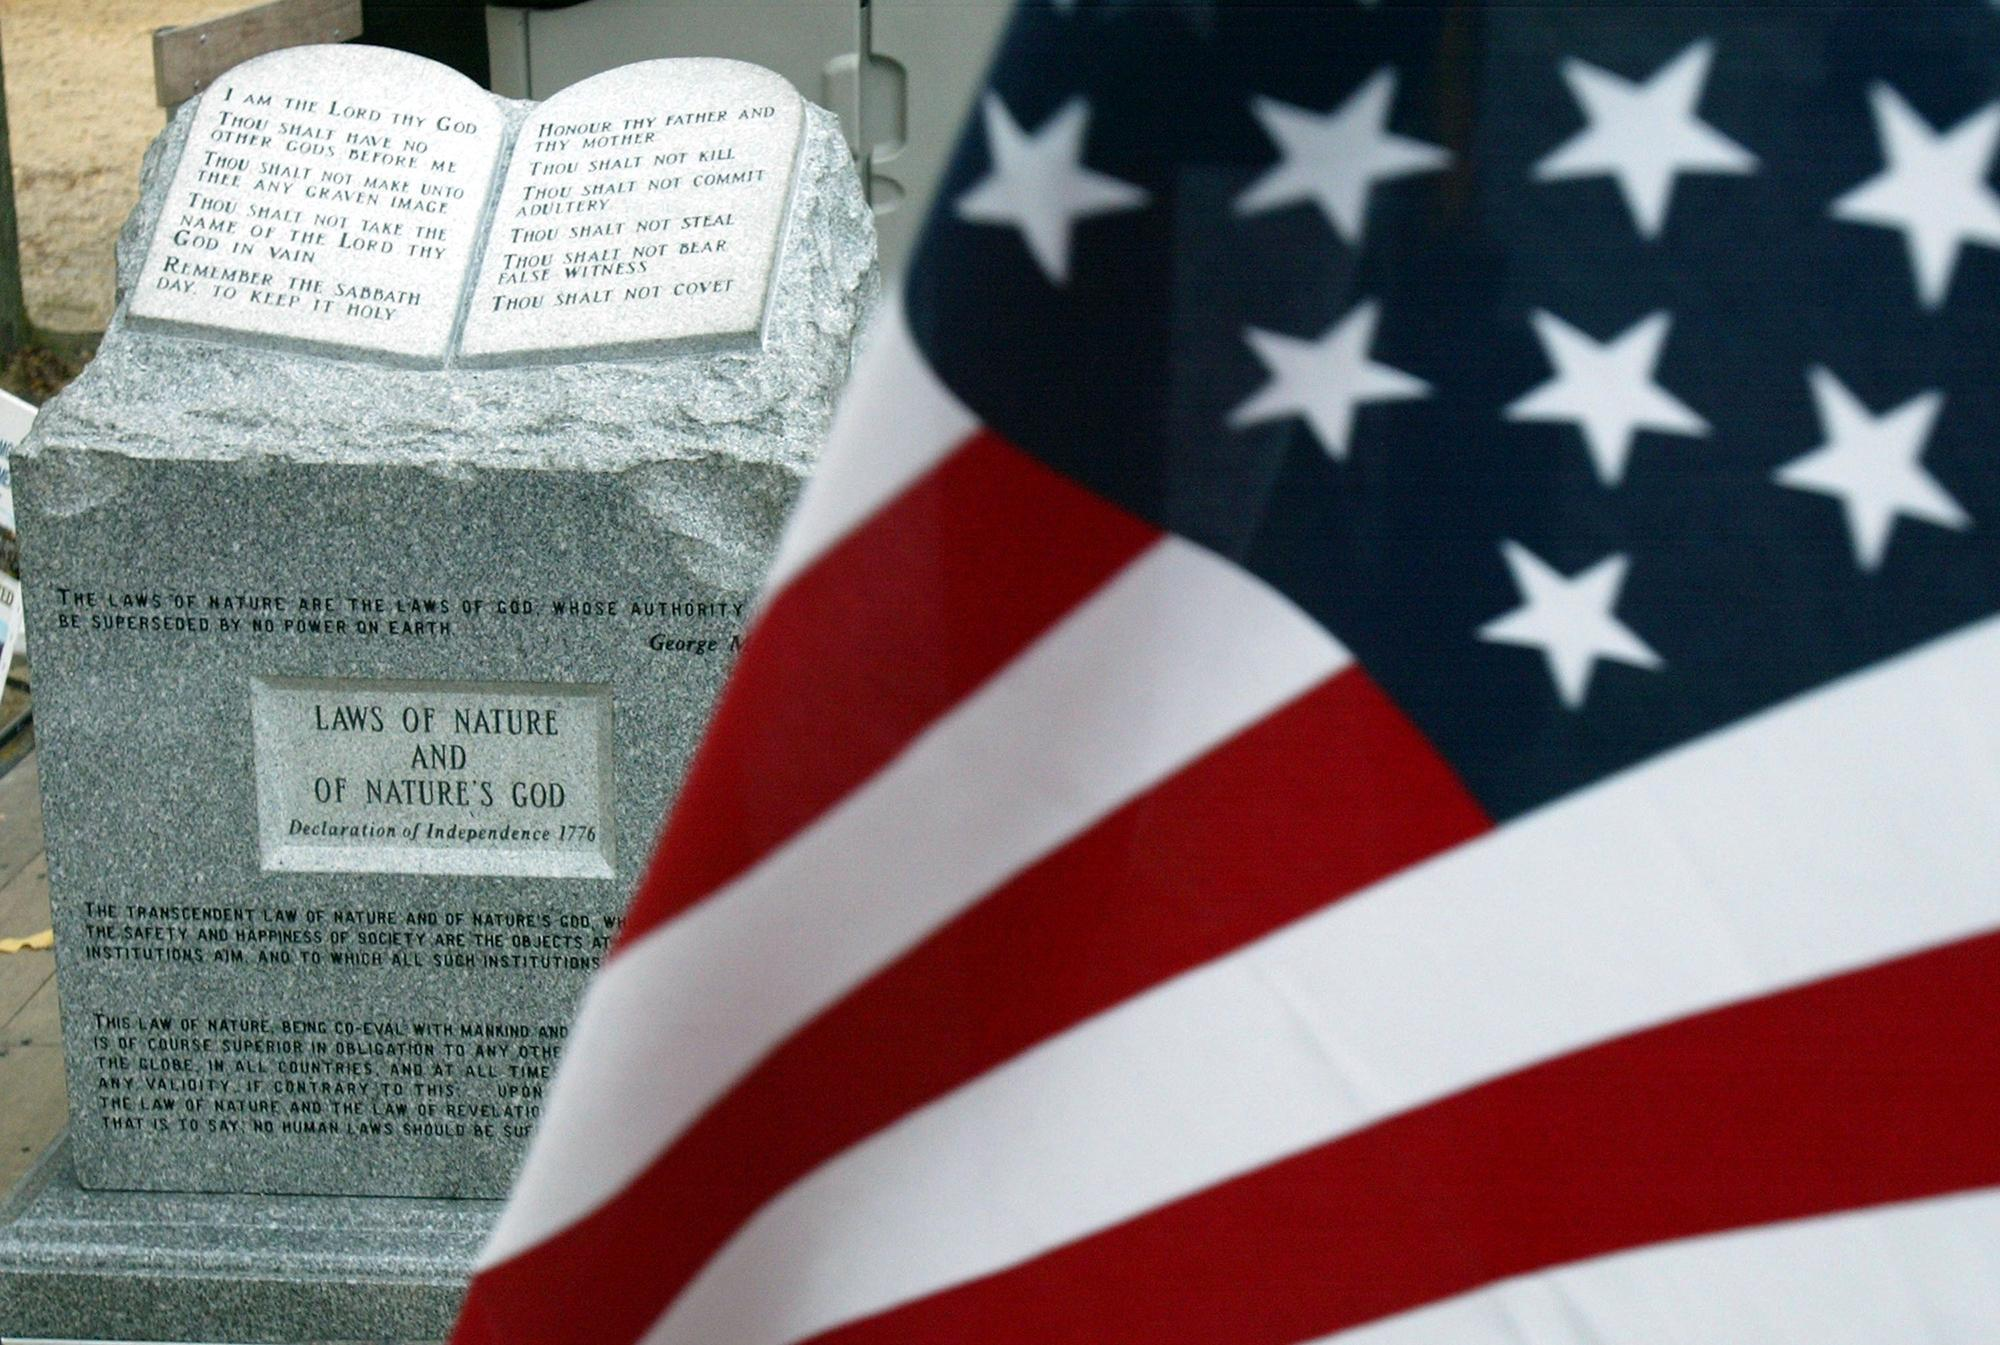 The Ten Commandments monument that was removed from the Alabama Judicial Building